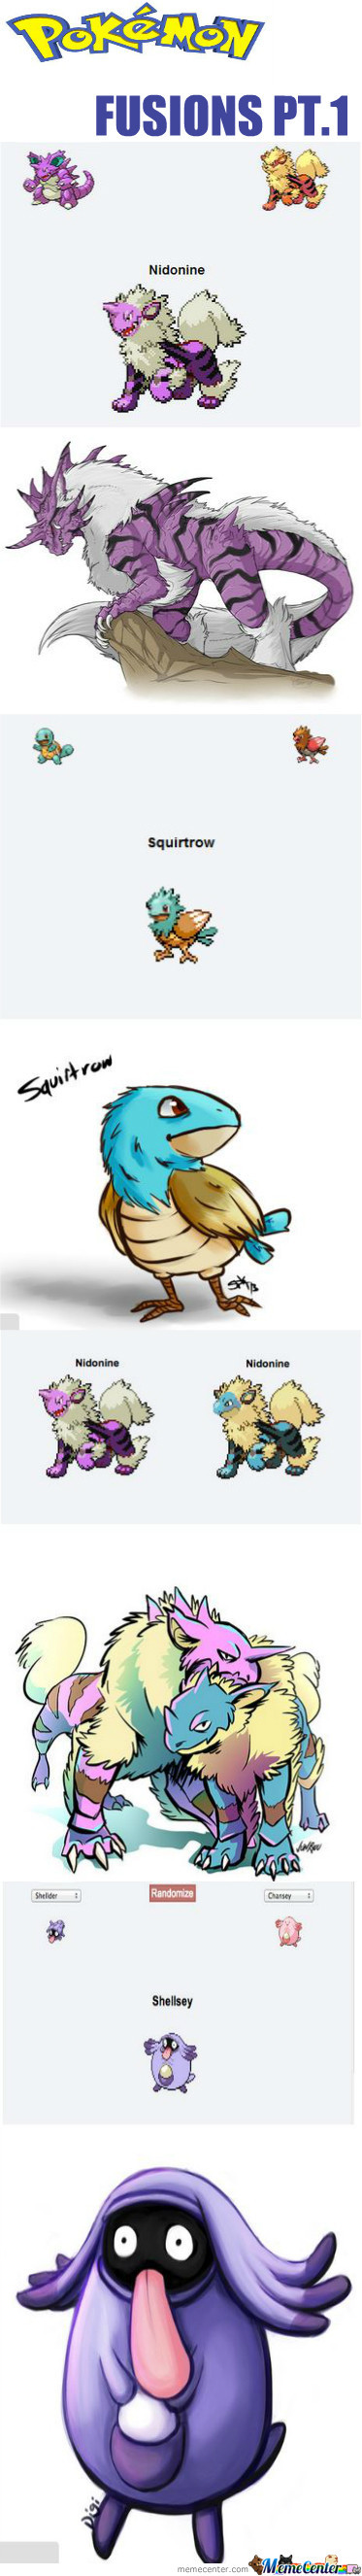 Pokemon Fusions Pt.1